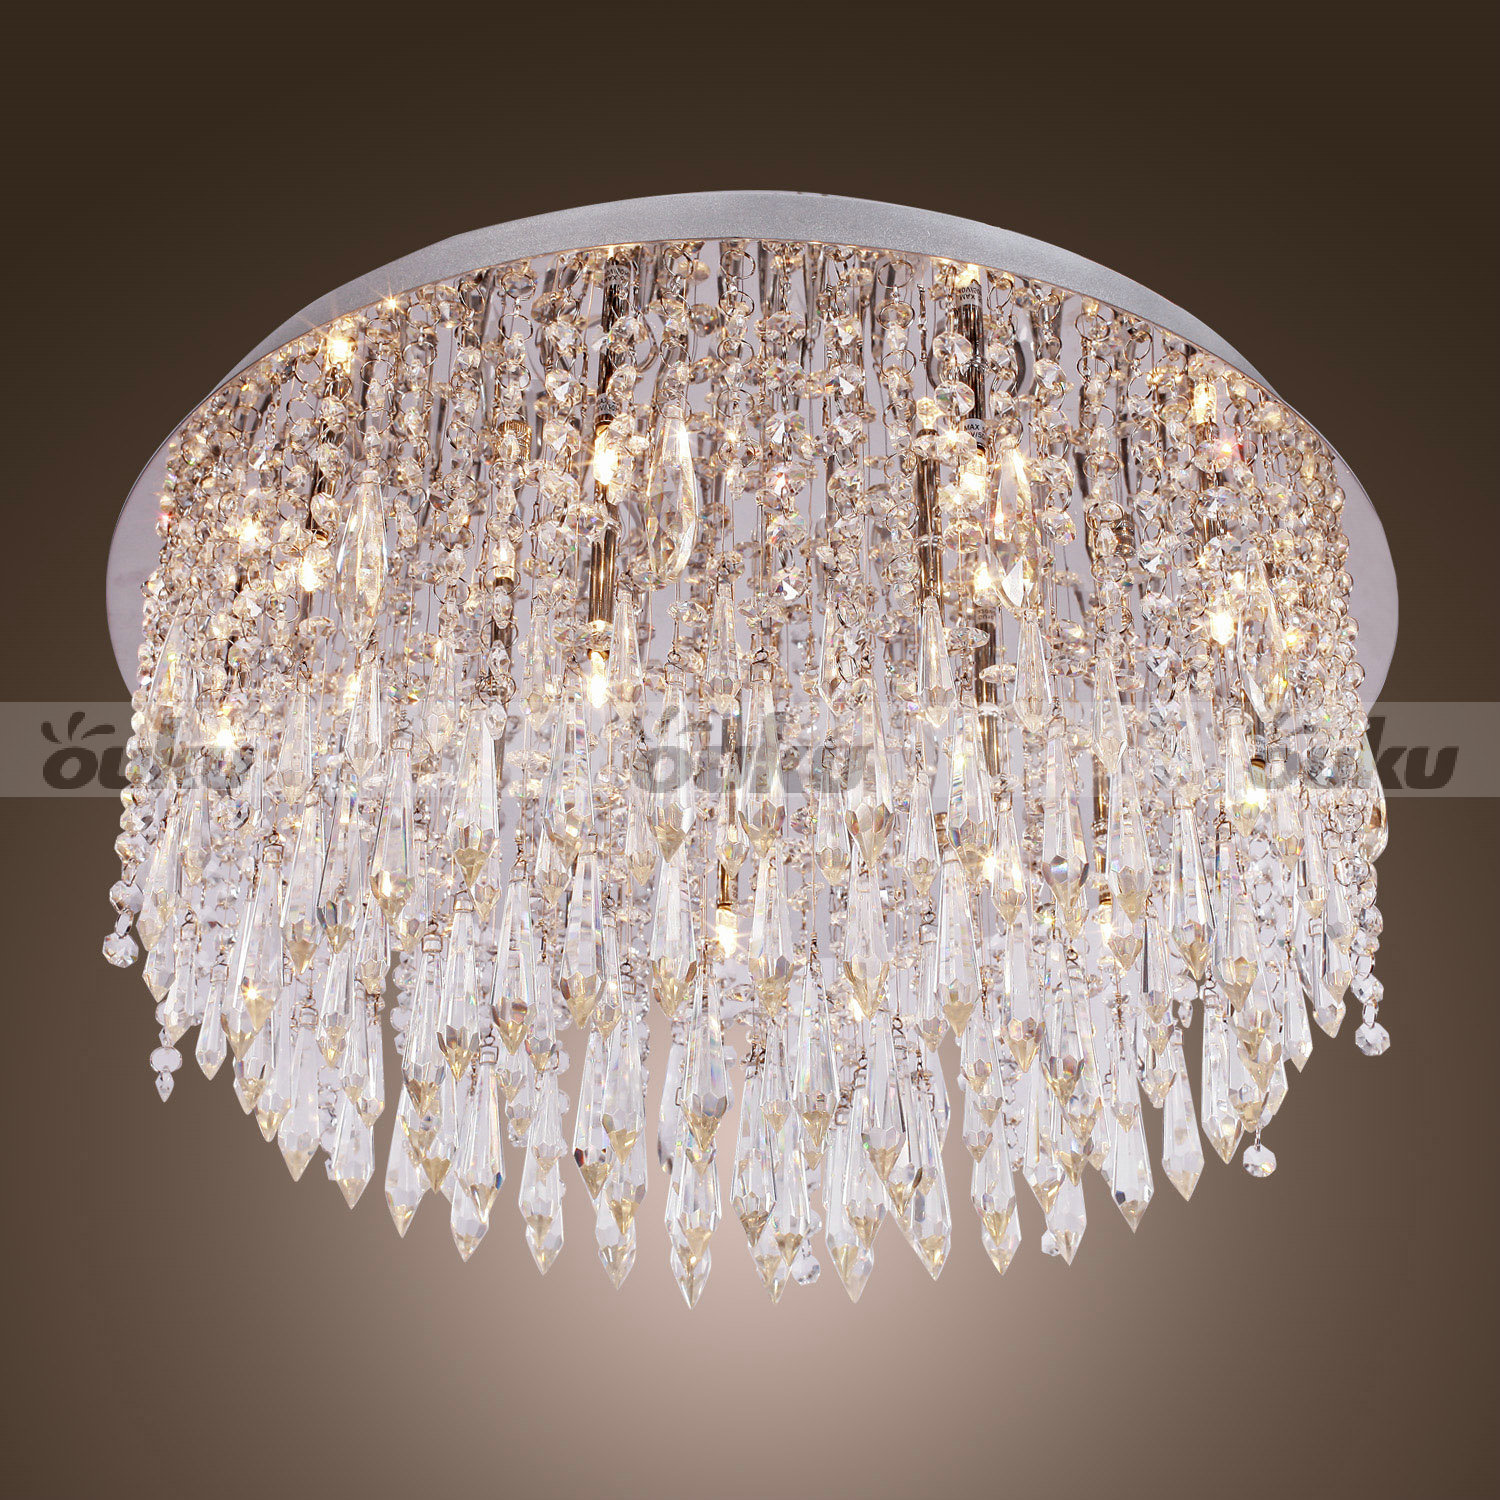 Crystal 15 light flush mount chandelier pendant lighting ceiling fixture lamp ebay - Chandelier ceiling lamp ...